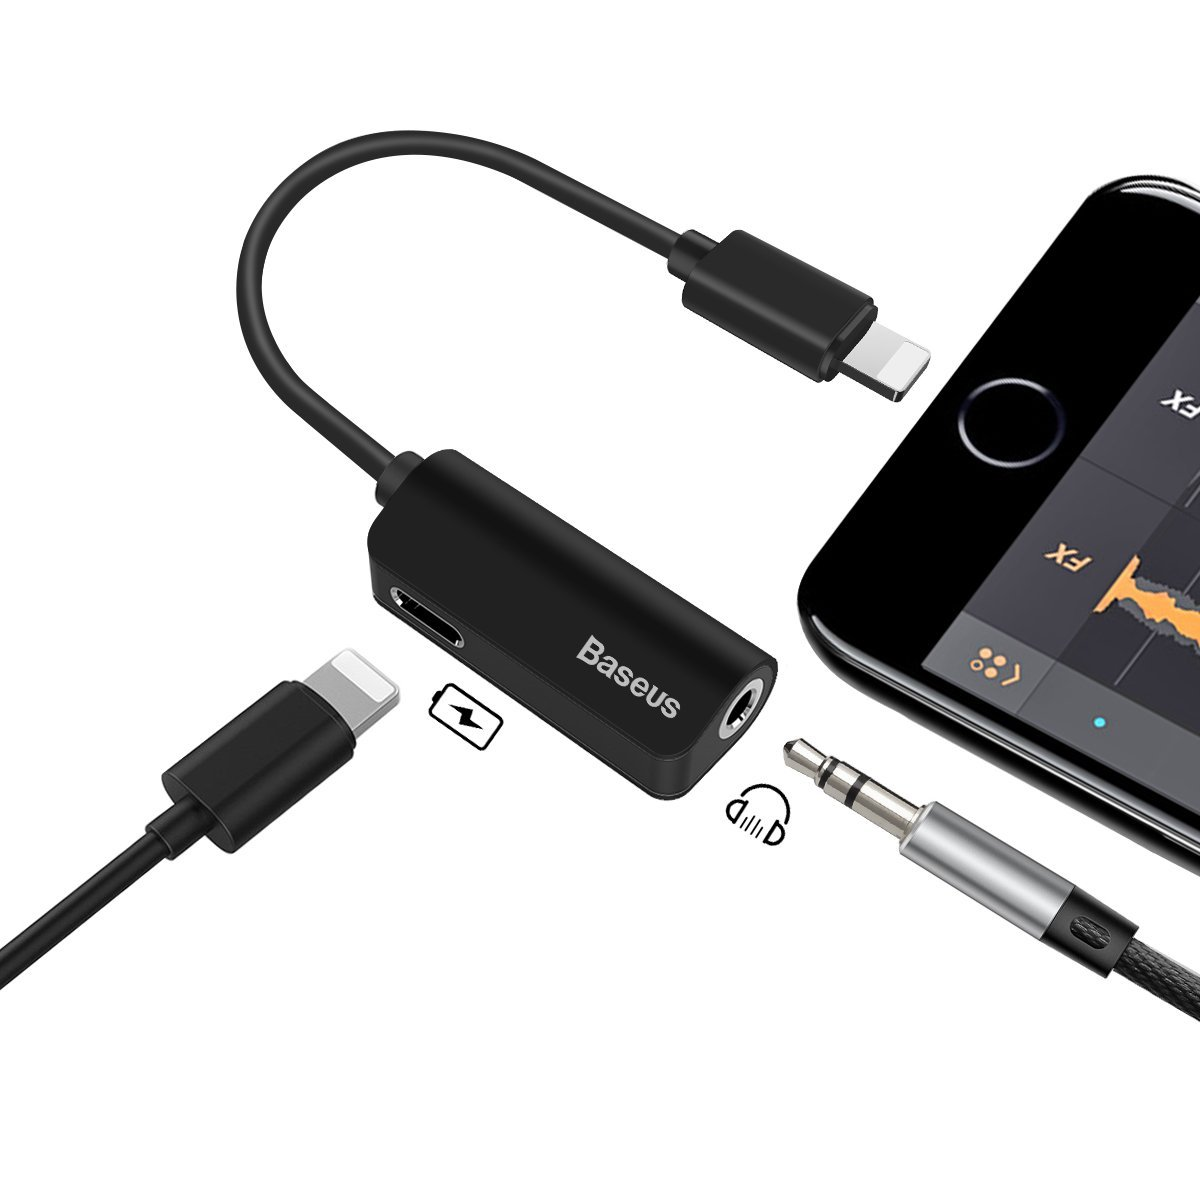 Iphone X 7 8 Plus Baseus 2 In 1 Lightning Audio Adapter Splitter Music Series Cable Black For Charging